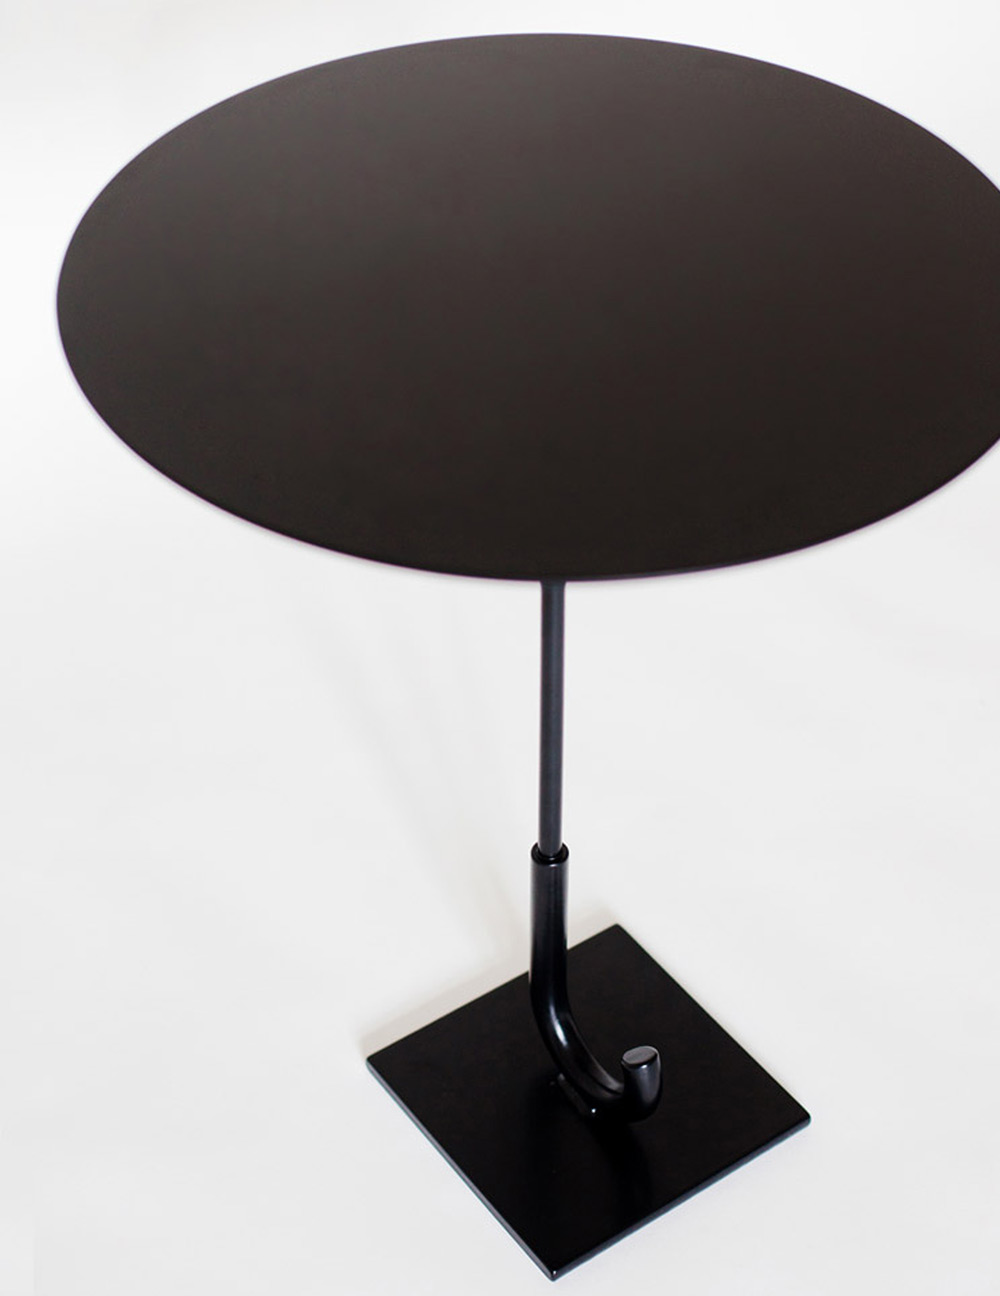 awesome-design-ideas-Parapluie-table-Rakso-Naibaf-2